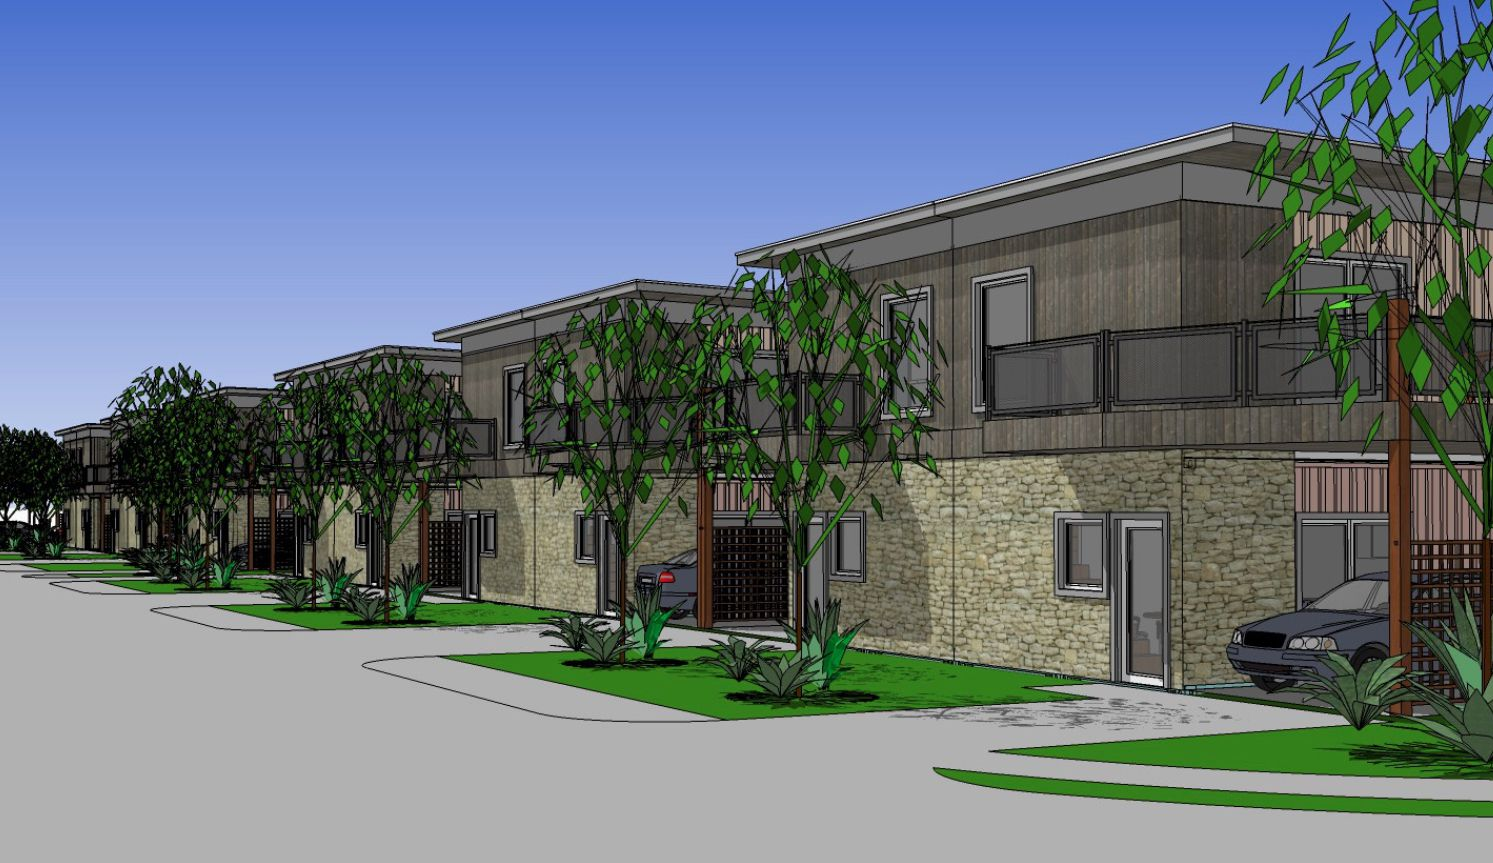 Habitat for Humanity's Cotton Groves project in McKinney will create affordable housing out of steel shipping containers.